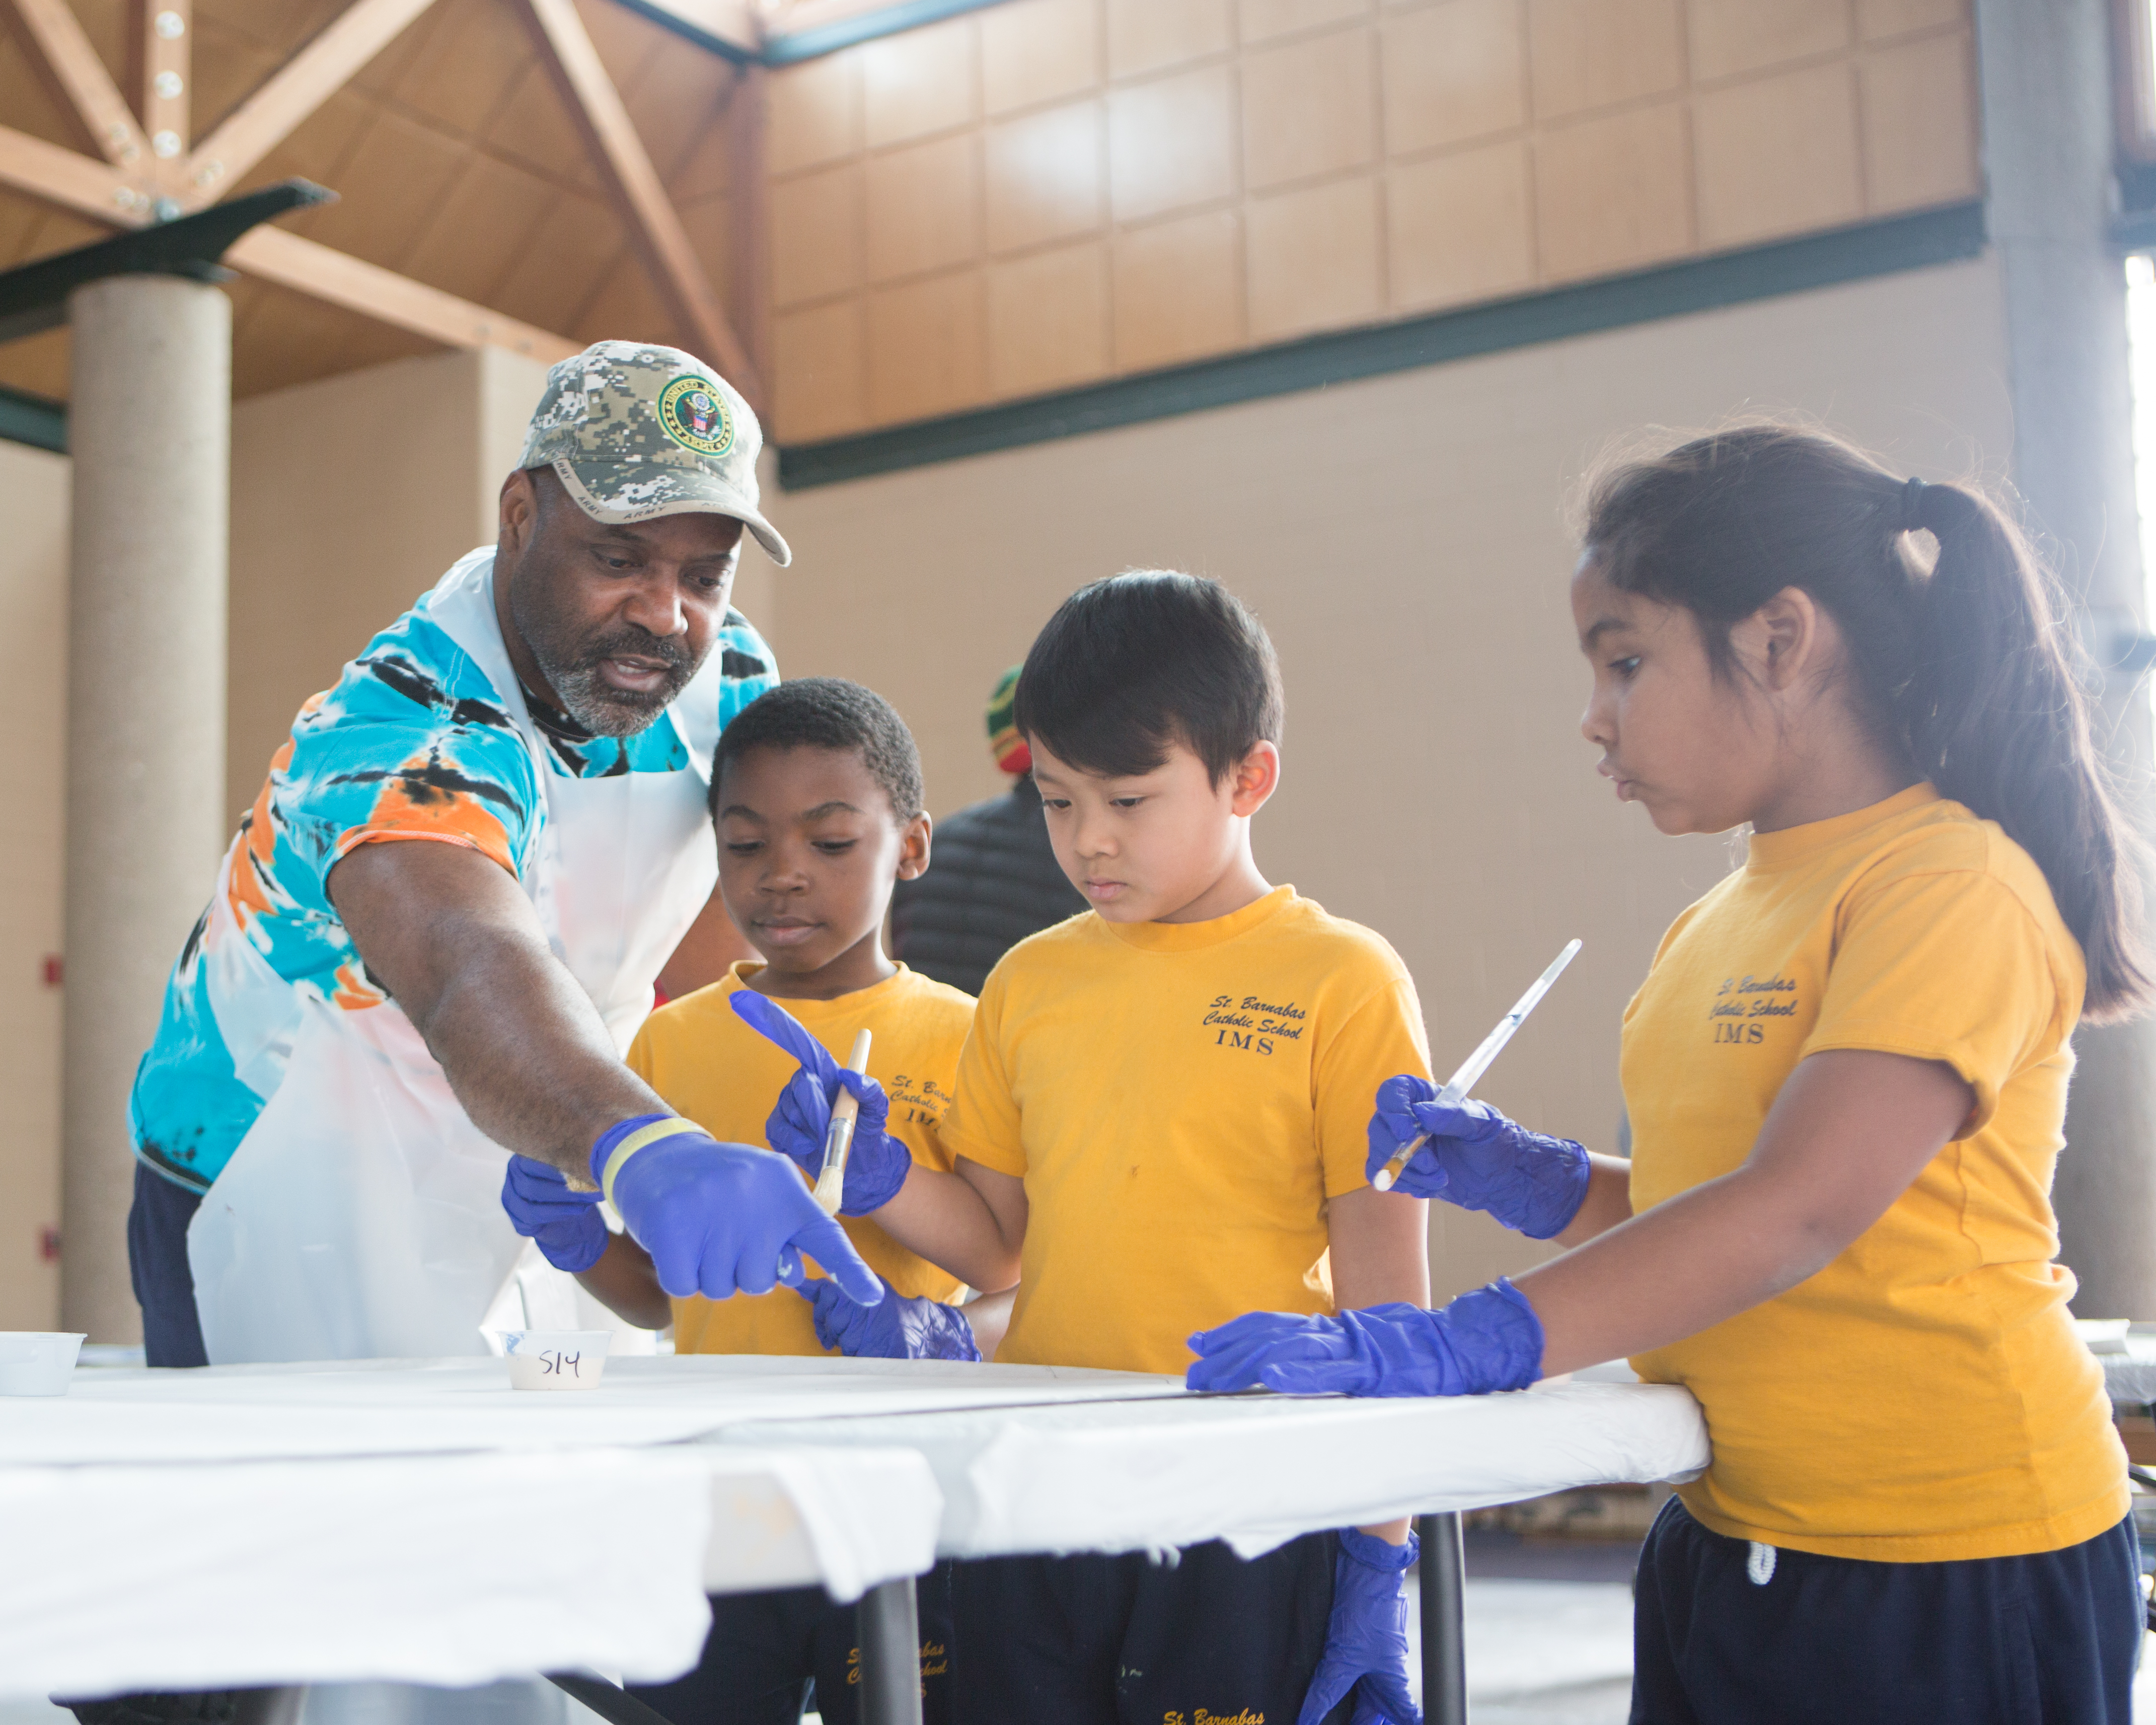 A man helps young children complete a group painting